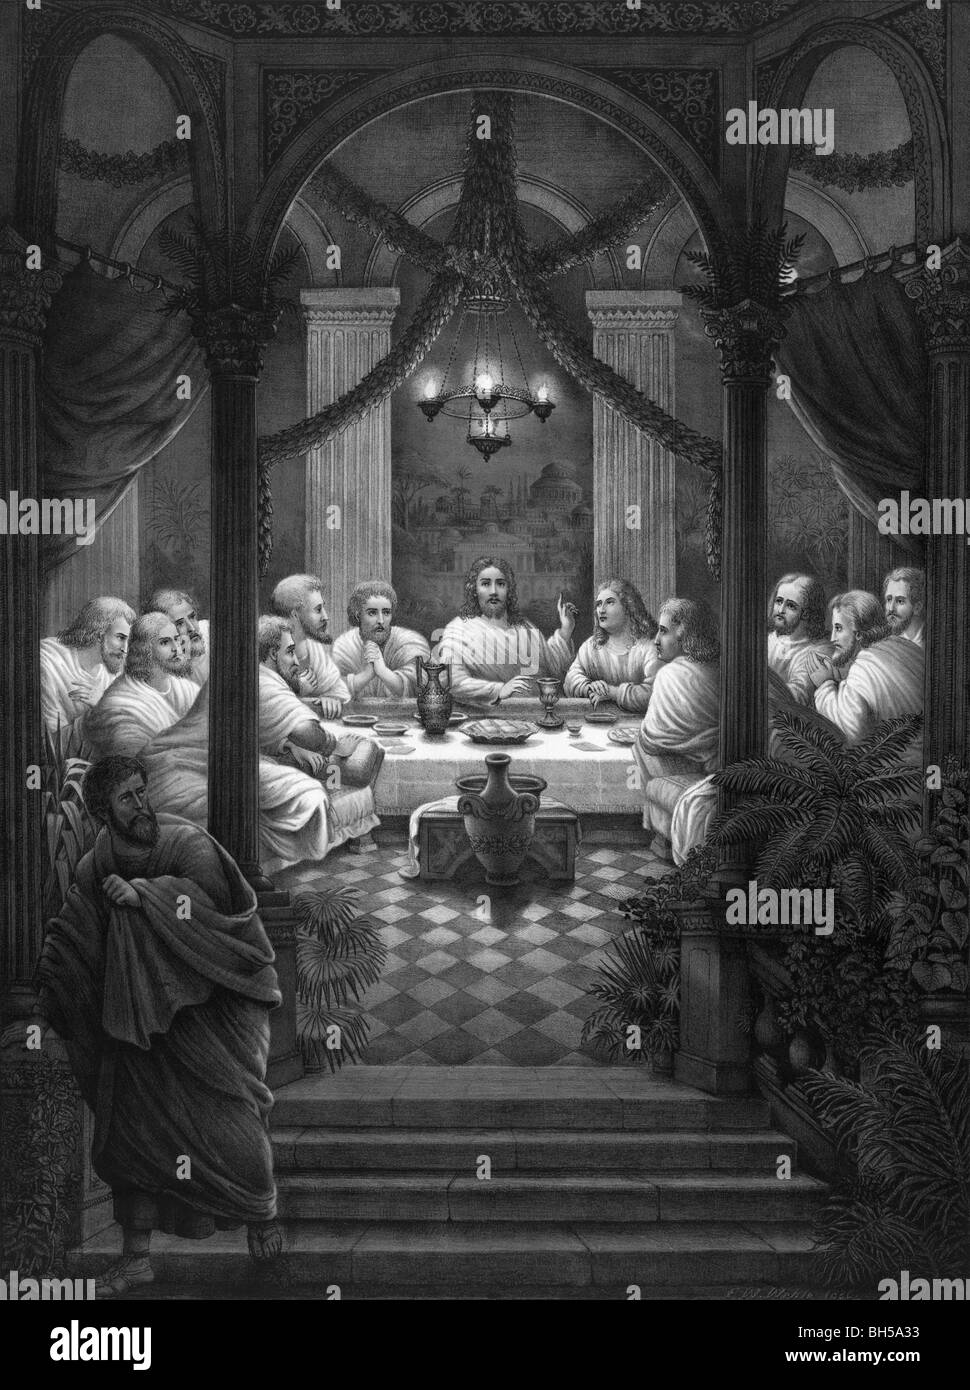 Print circa 1886 showing the Last Supper of Jesus Christ and his disciples as depicted in the Gospels. - Stock Image